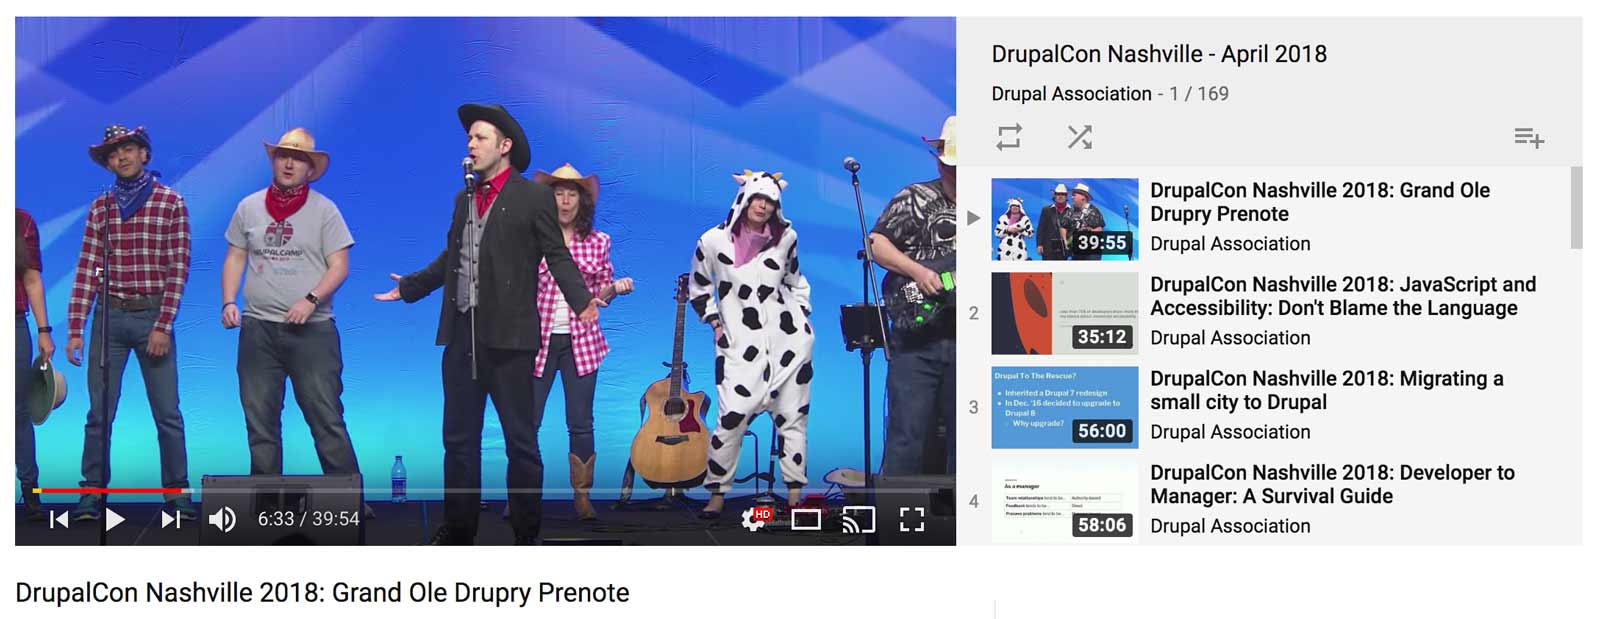 DrupalCon Nashville YouTube station